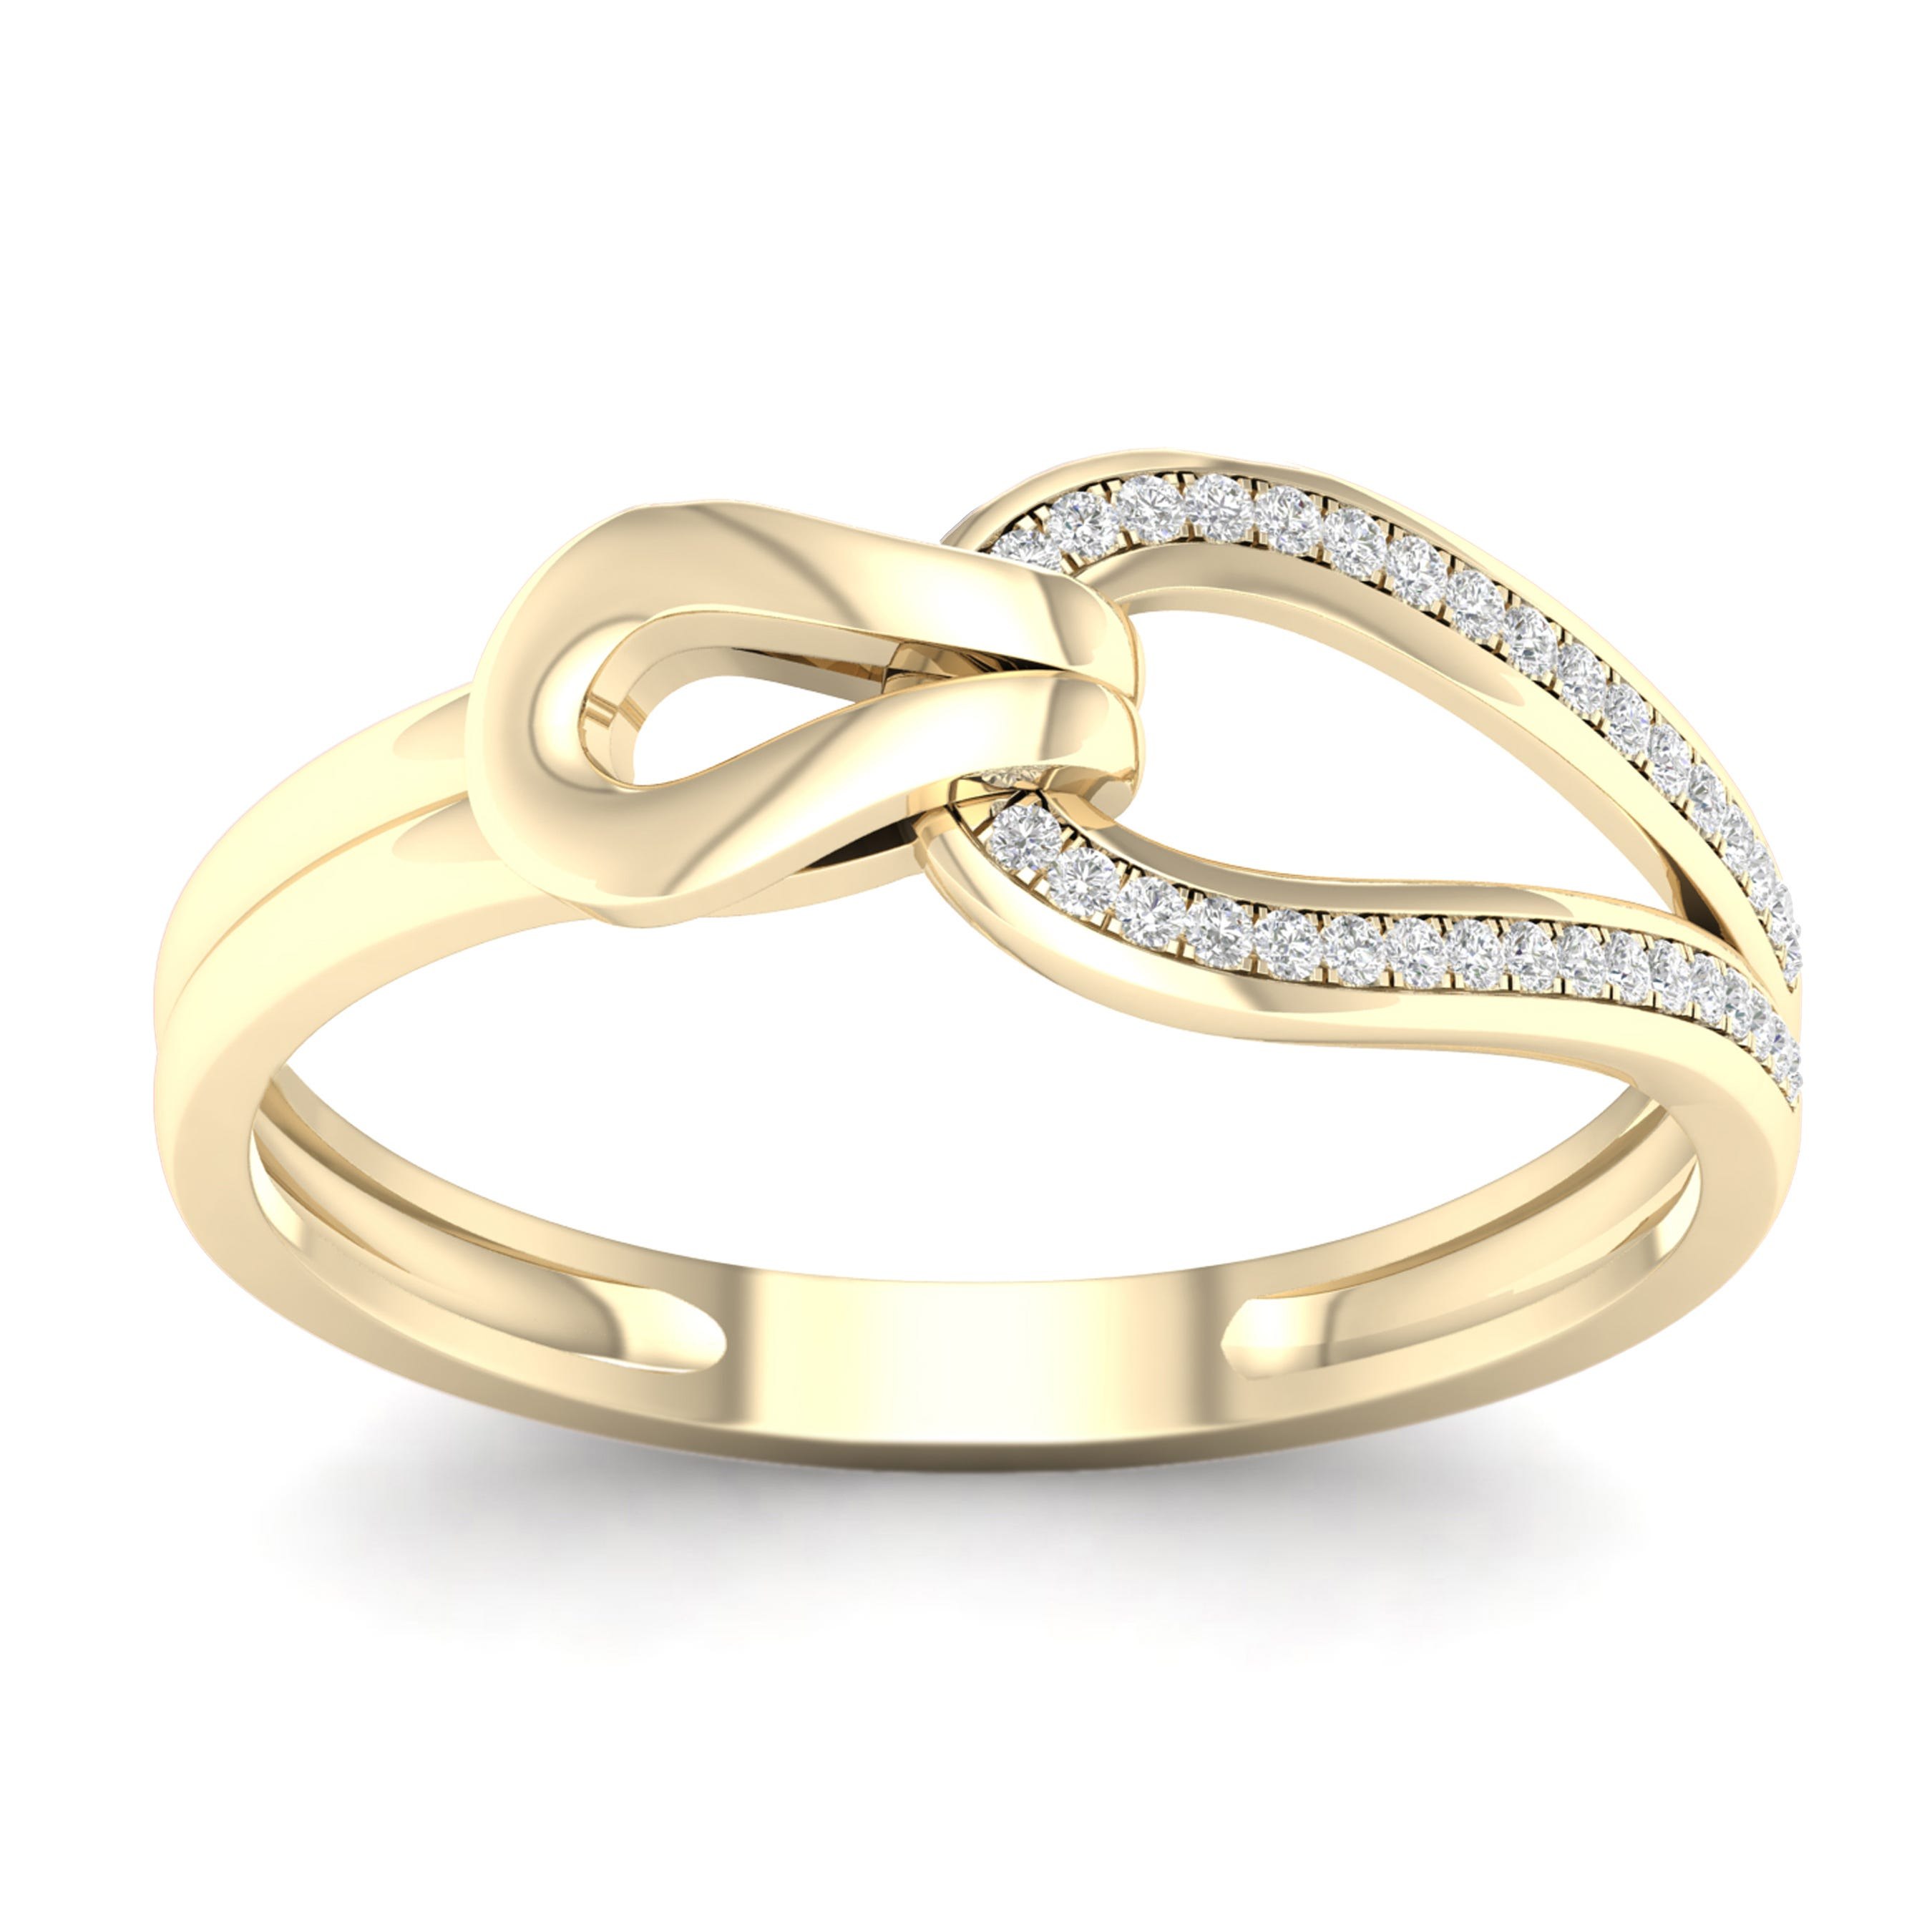 Diamond 1/10ctw. Love Knot Promise Ring in 10k Yellow Gold